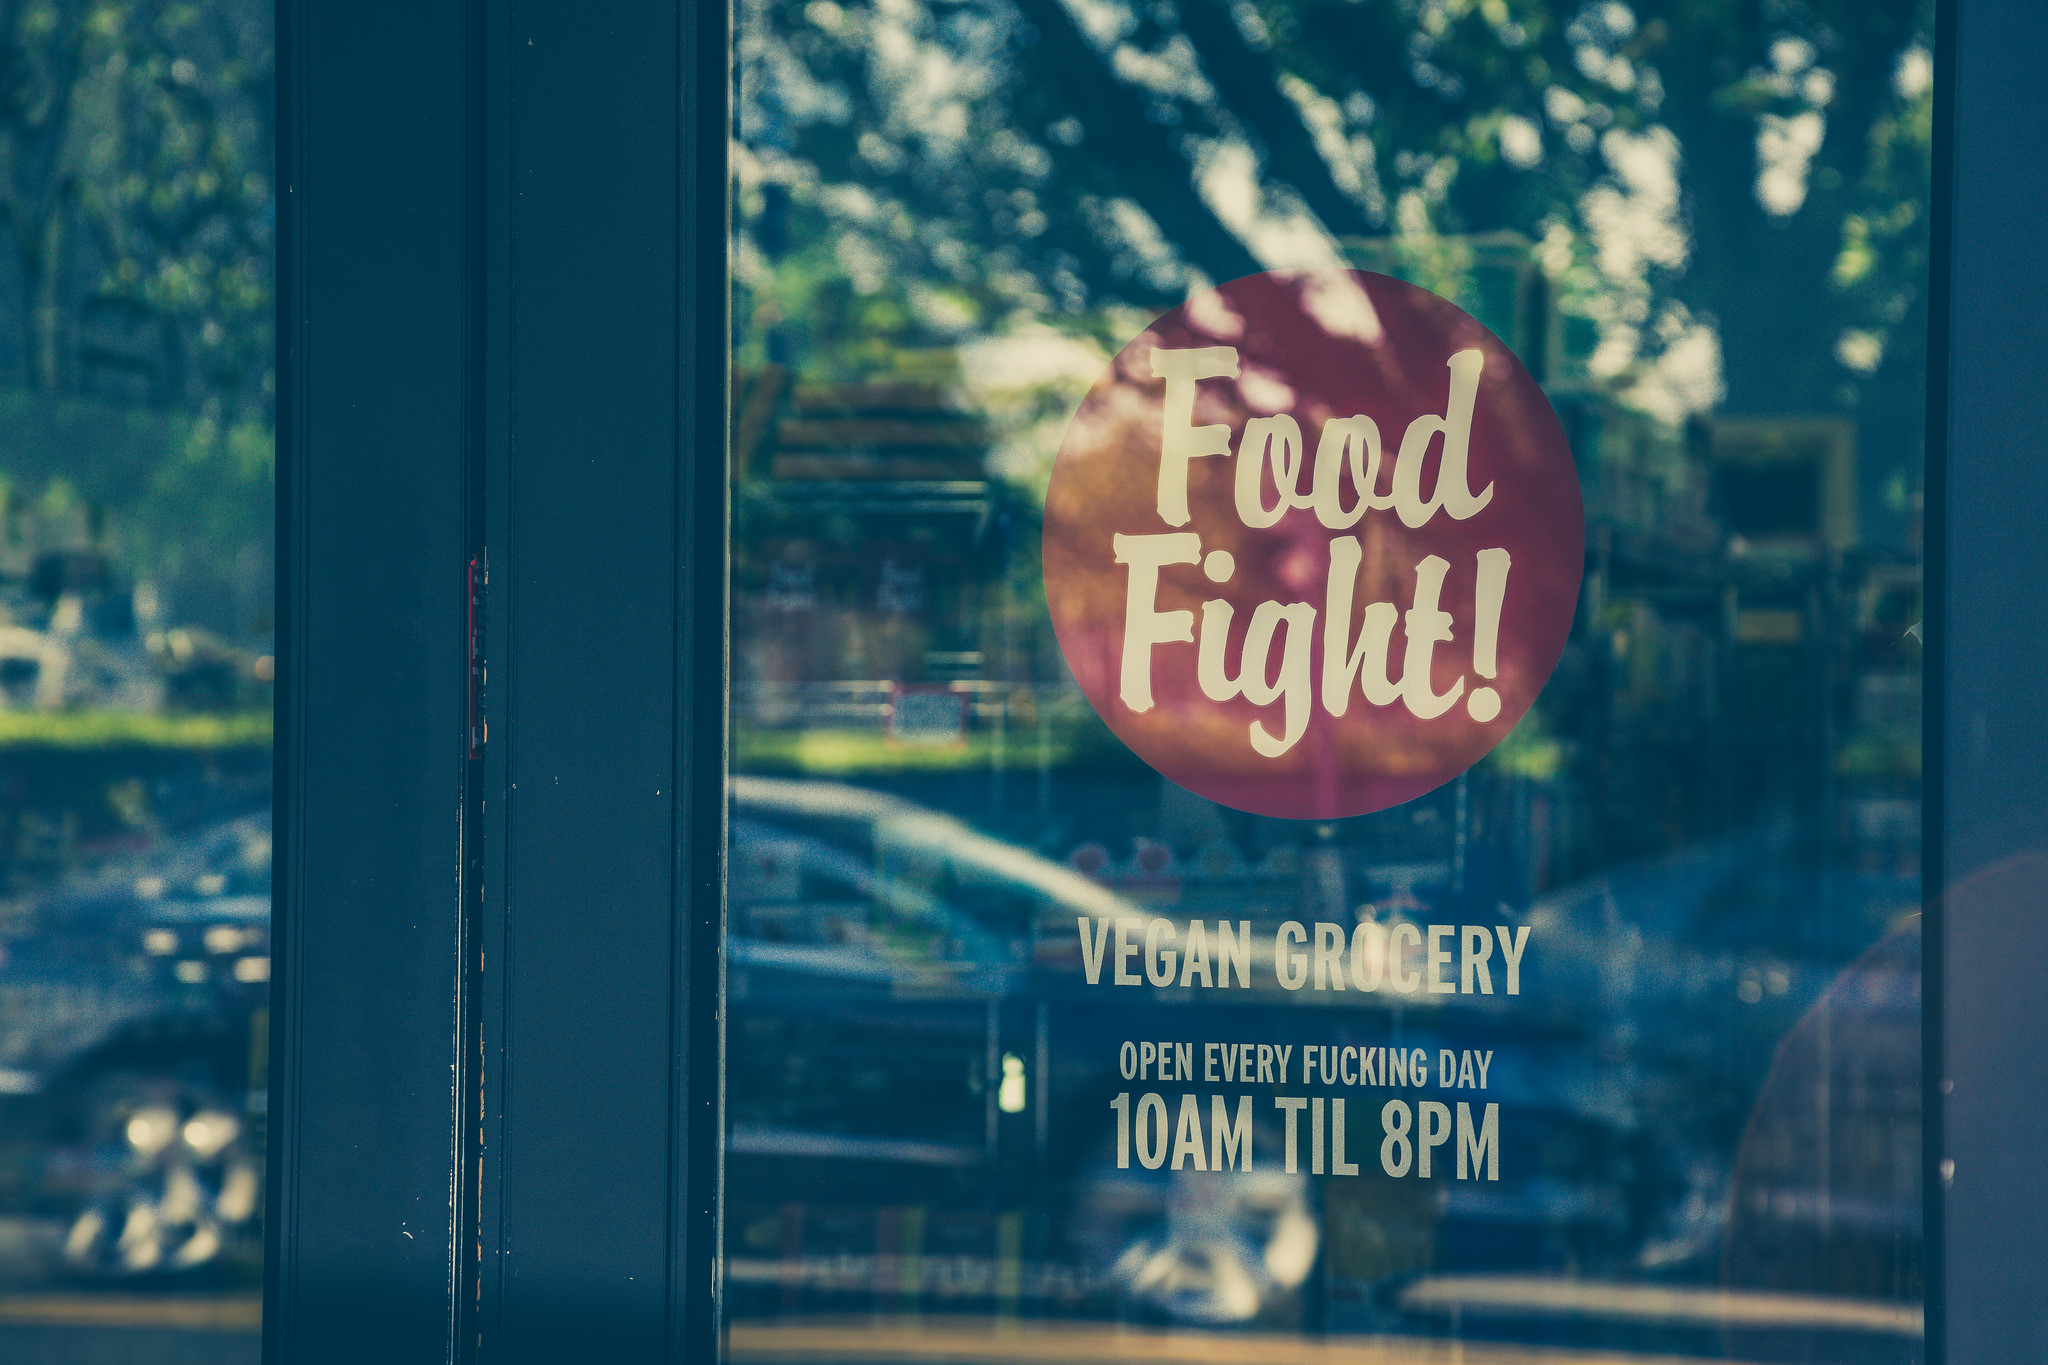 """Food Fight!"" by Tony Webster via Flickr Creative Commons"